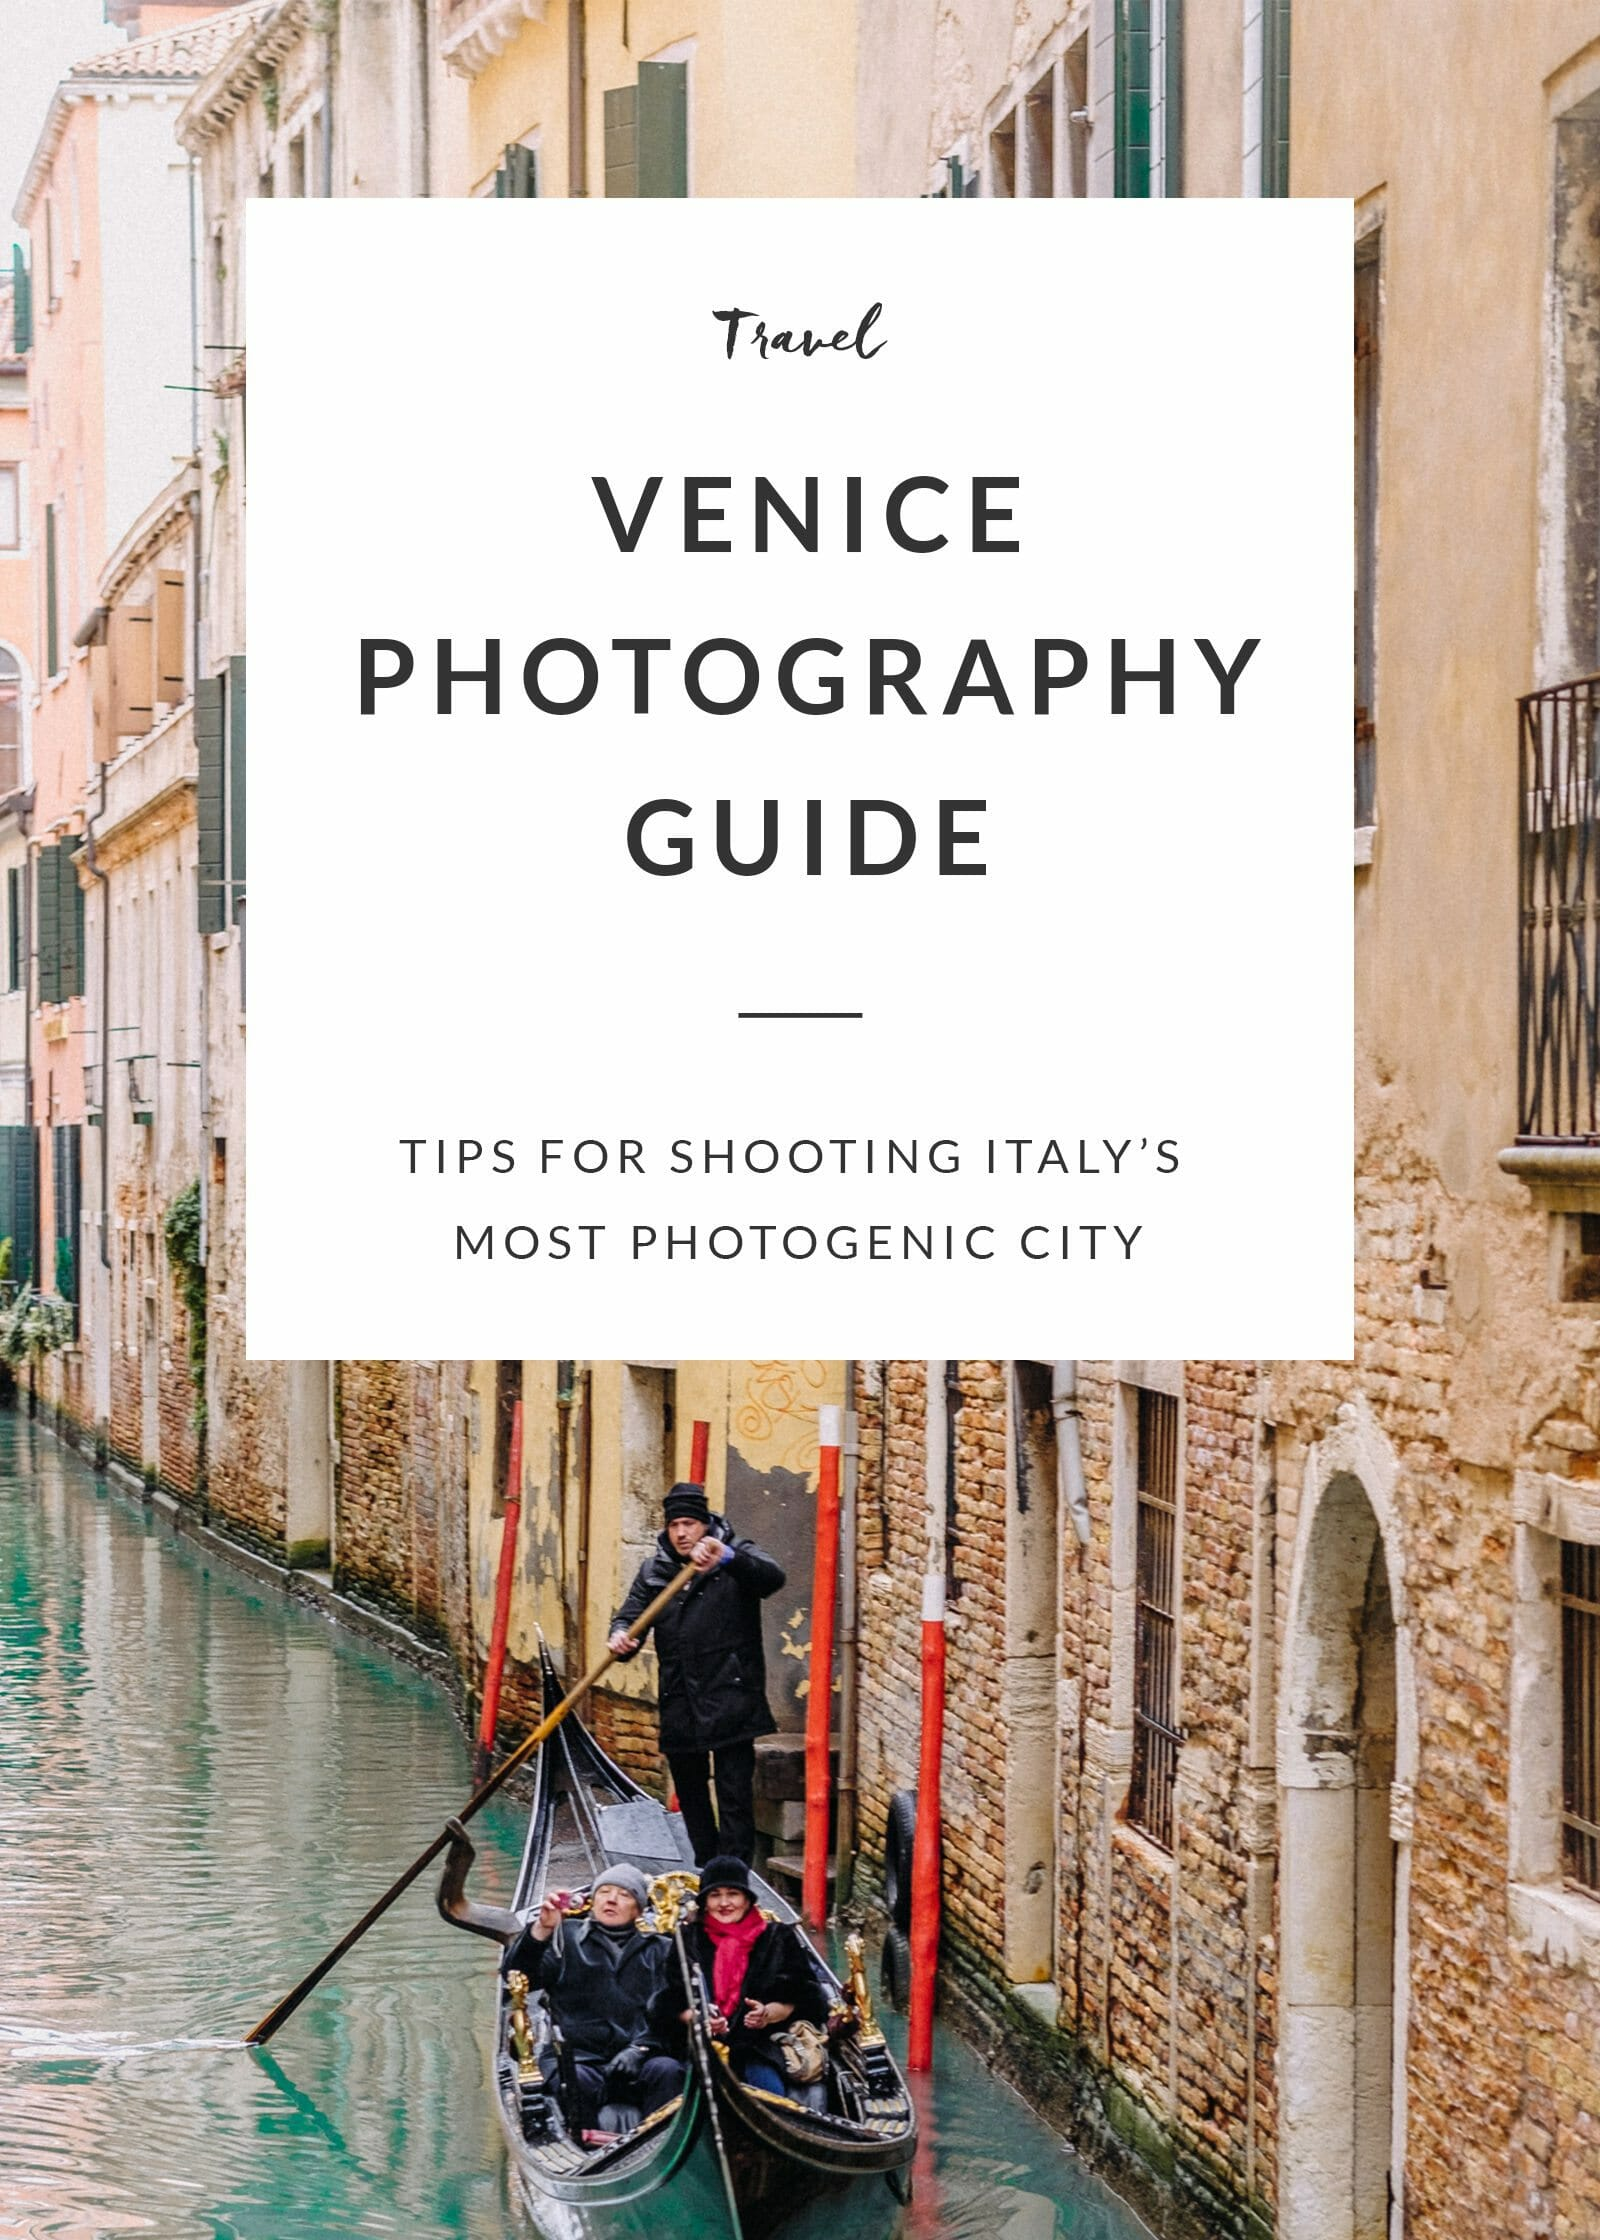 Venice Photography Guide: Tips for Shooting Italy's Most Photogenic City